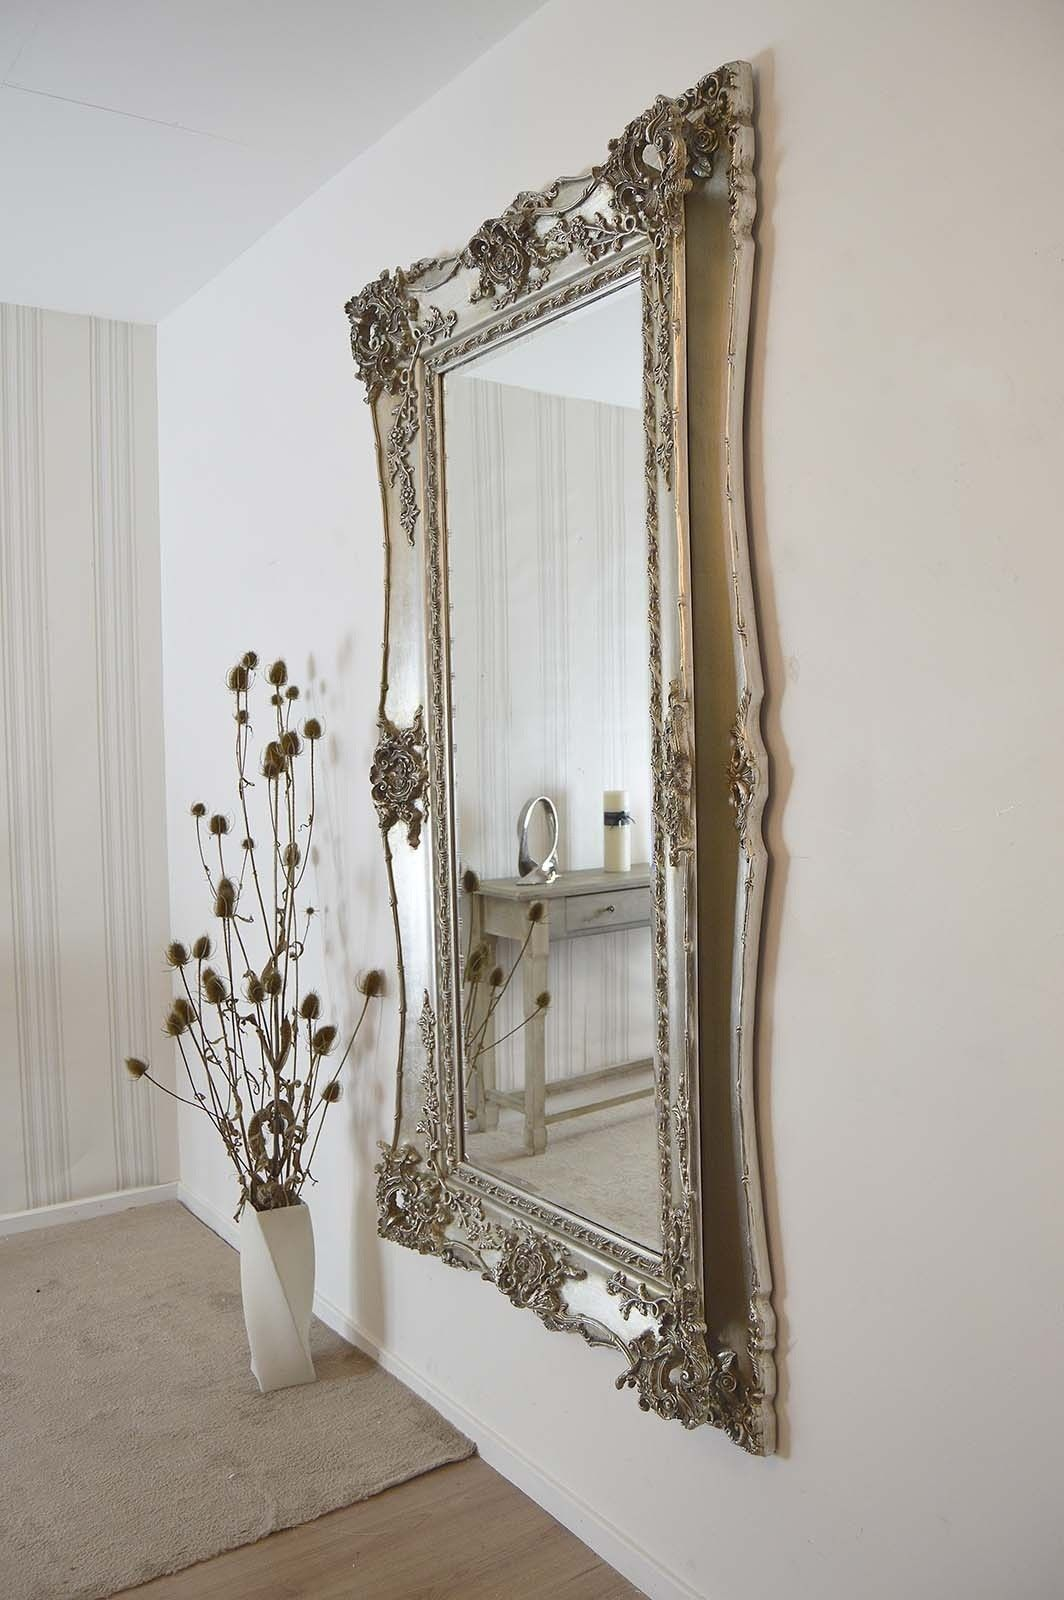 Extra Large Very Ornate Full Length Antique Silver Big Wall Mirror 6ft5 X 3ft5 Big Wall Mirrors Mirror Wall Entryway Wall Decor